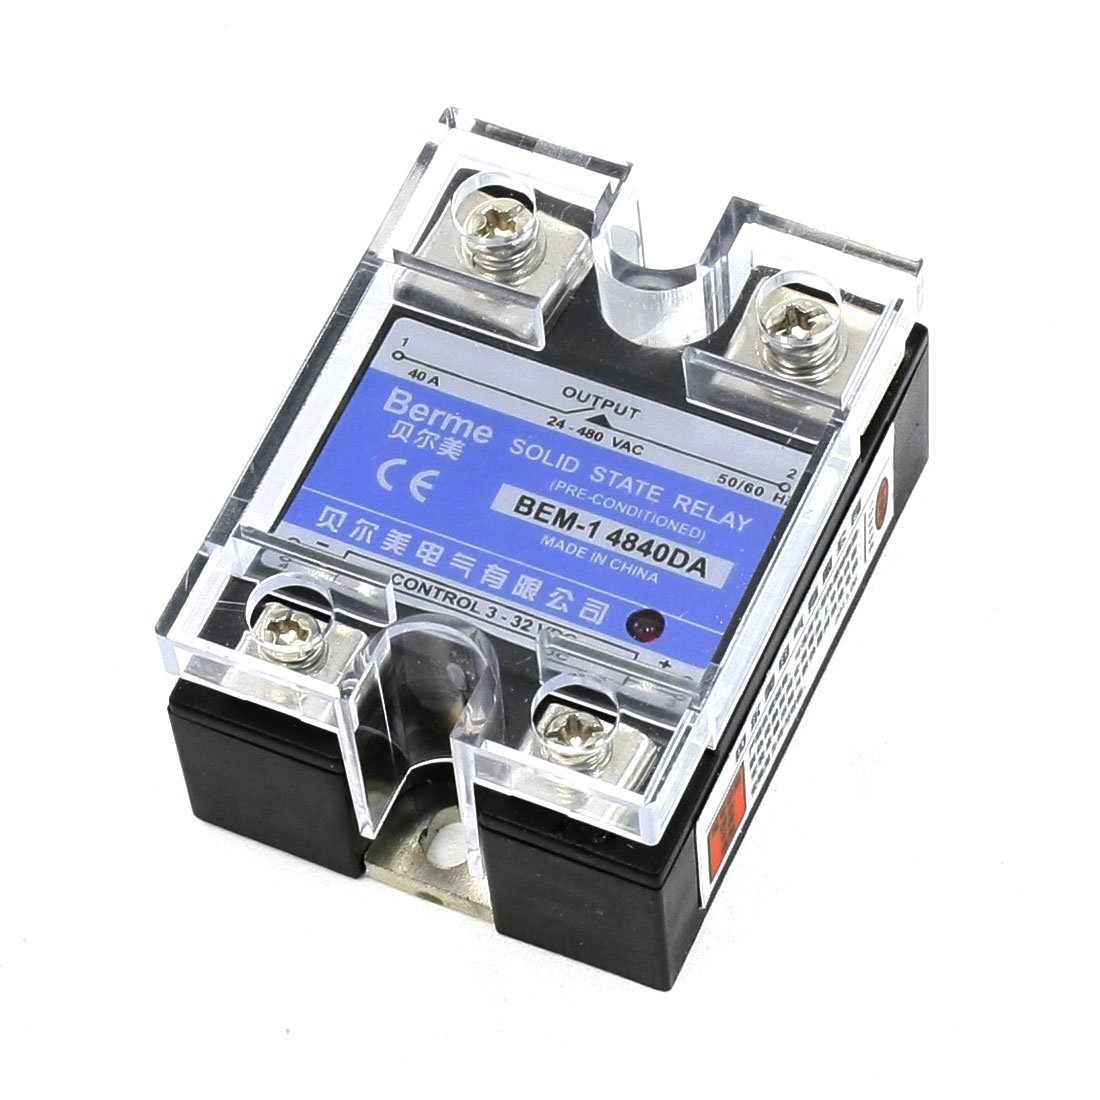 цена на LHLL-24-480V AC DC to 3-32VDC Output Single Phase SSR Solid State Relay 40A